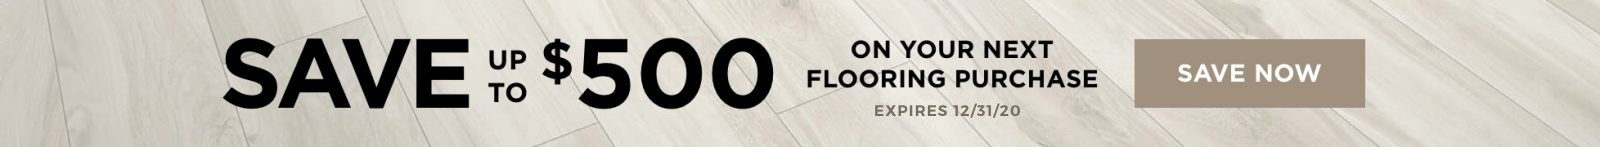 Carpet Products | Macco's Floor Covering Center